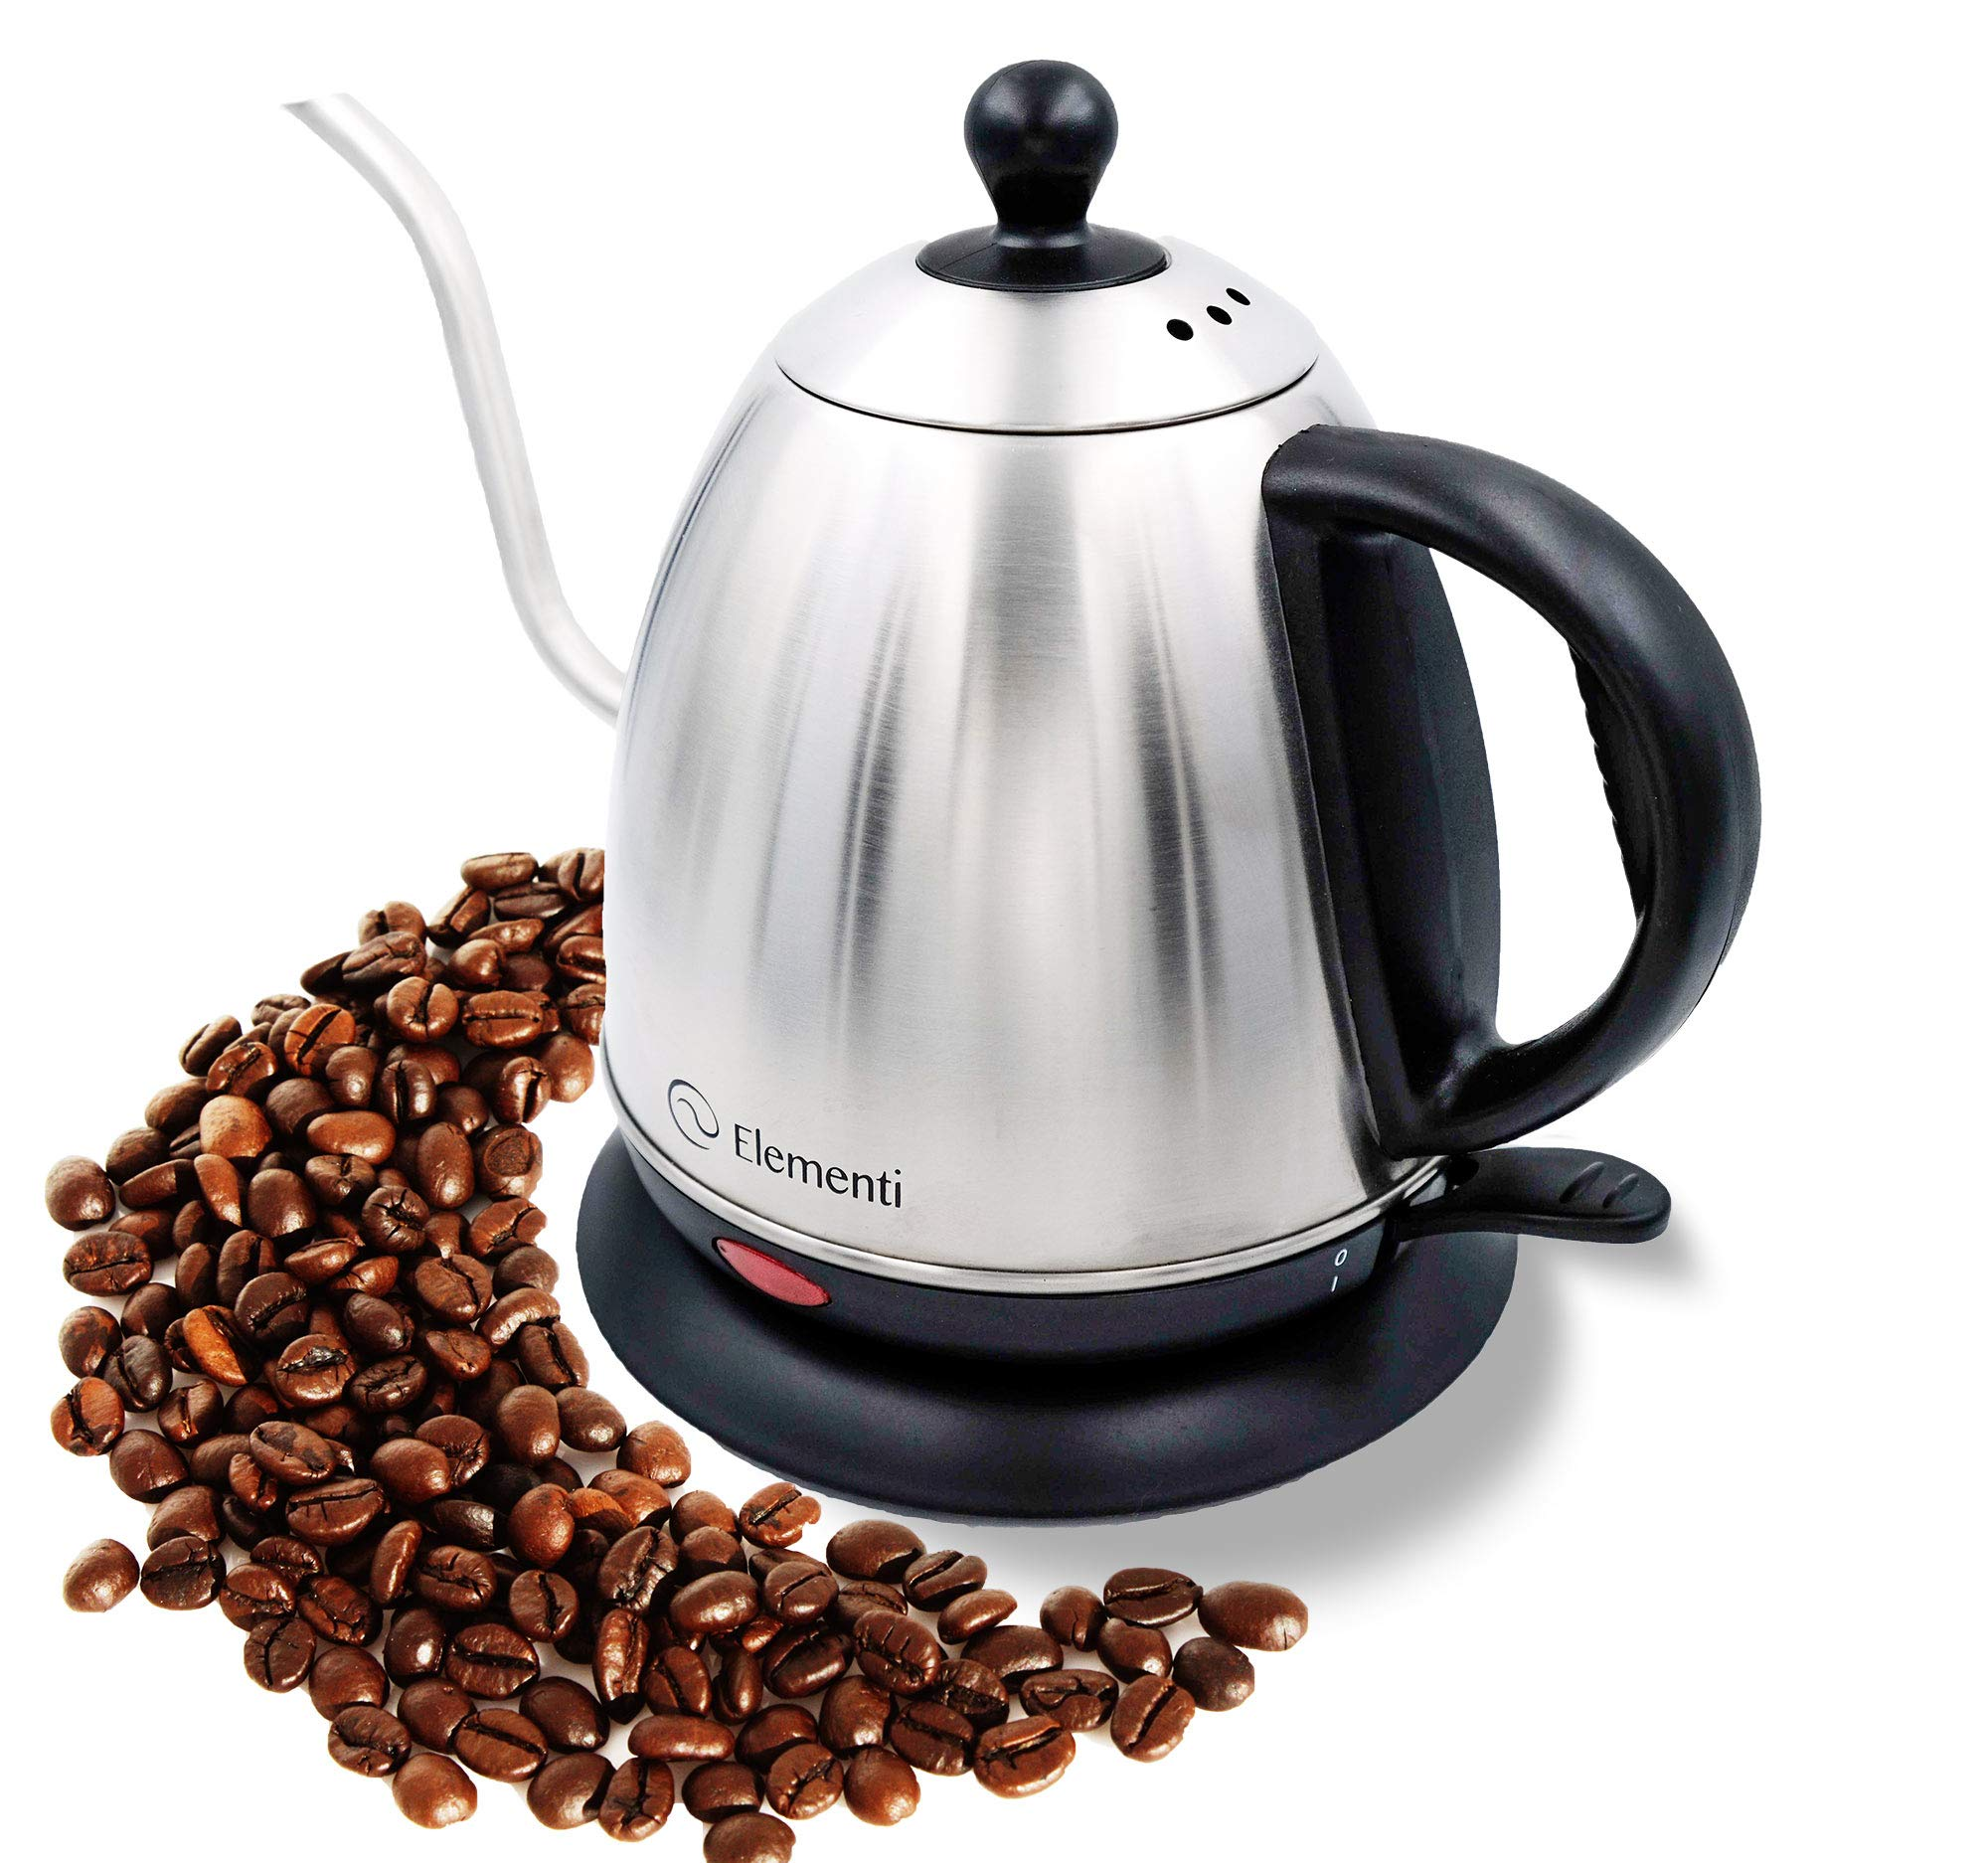 Elementi Premier Electric Gooseneck Kettle for Pour Over Coffee and Tea   1.0 Liter Stainless Steel Drip Kettle Teapot